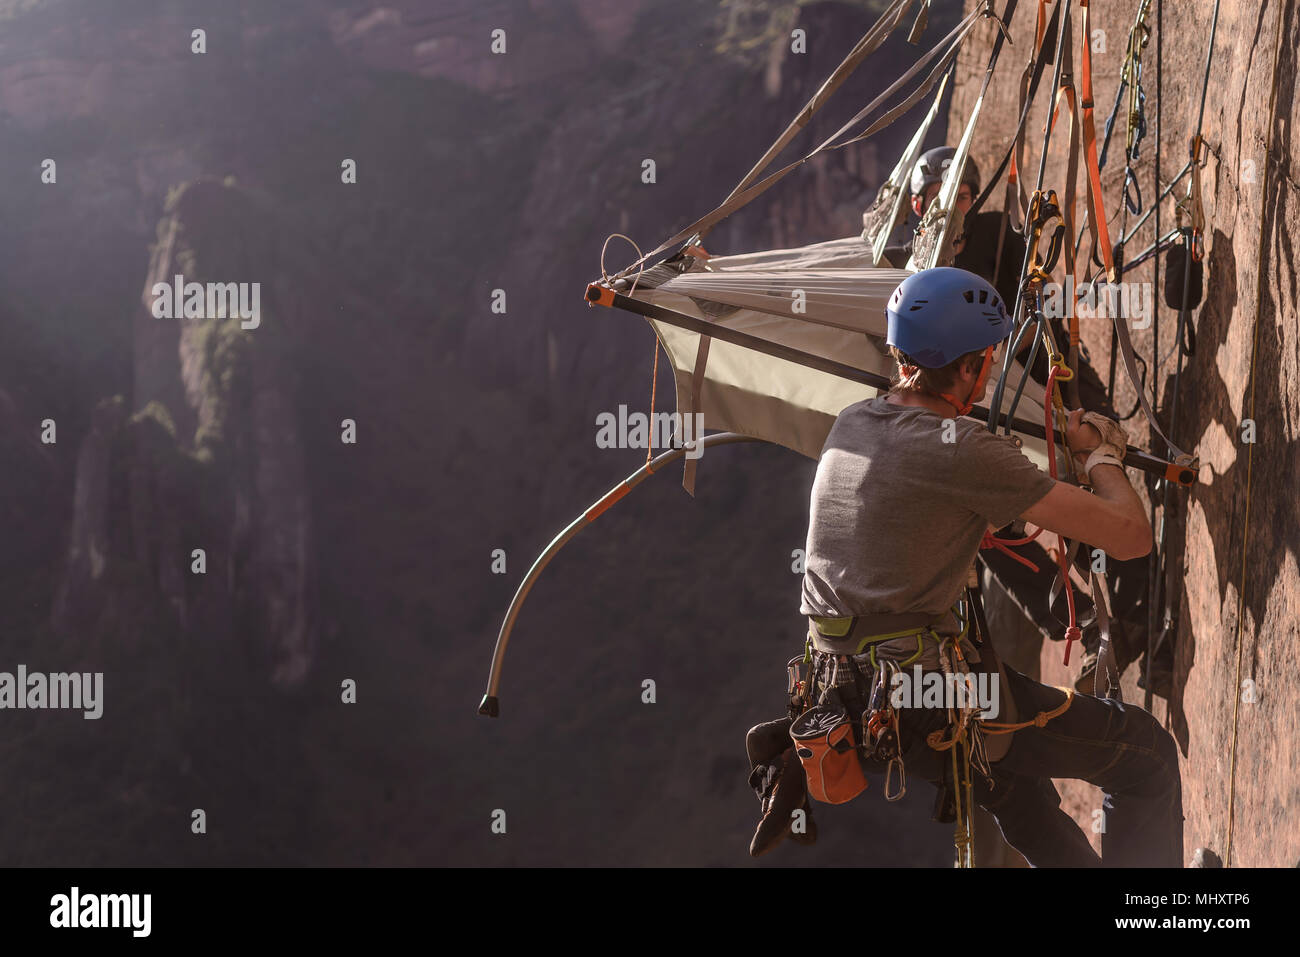 Two rock climbers attaching portaledge to rock, Liming, Yunnan Province, China - Stock Image